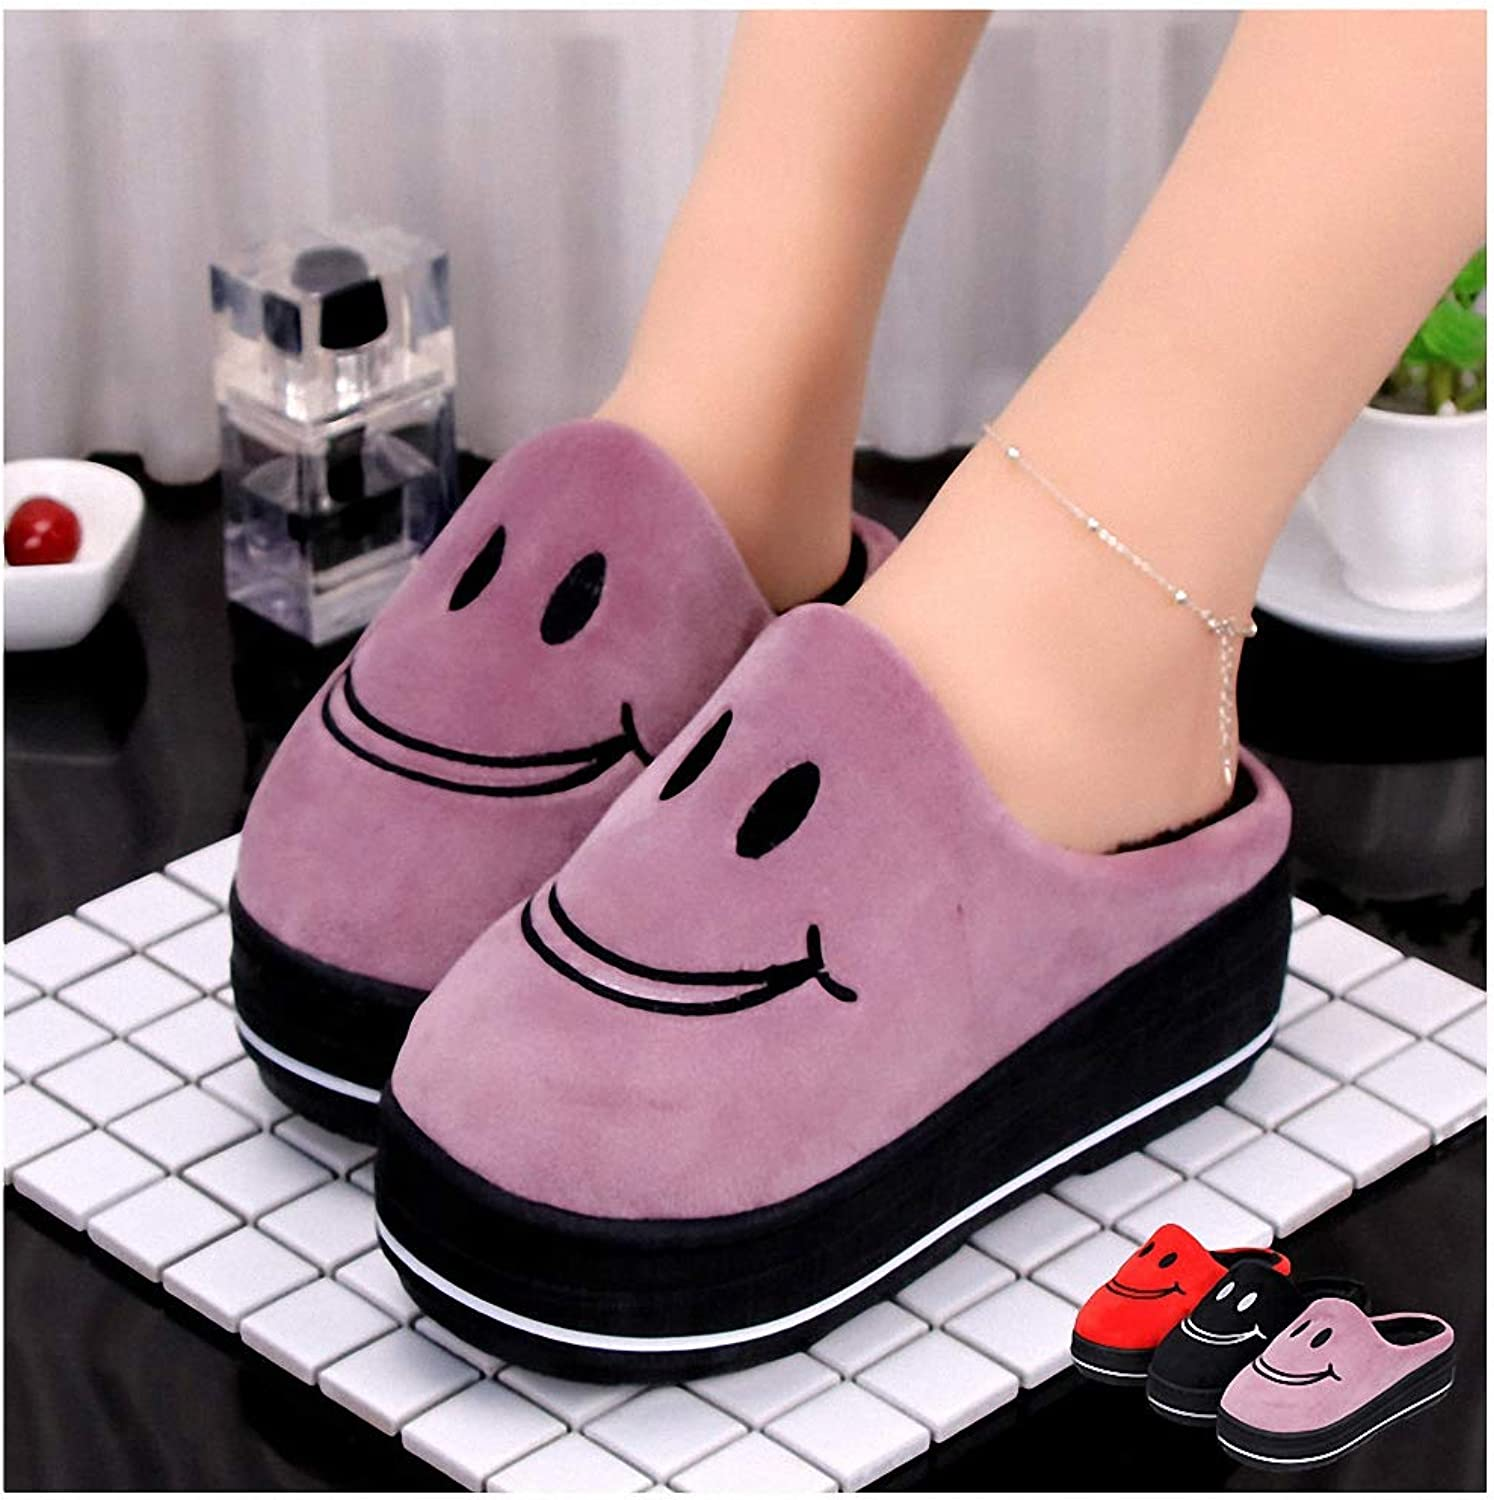 Womens Slippers Winter Cotton Slippers Cute Smiley High Heel Built-in Plush Slippers Keep Warm Home Slip Non-Slip Wool shoes Wool Increase 5cm